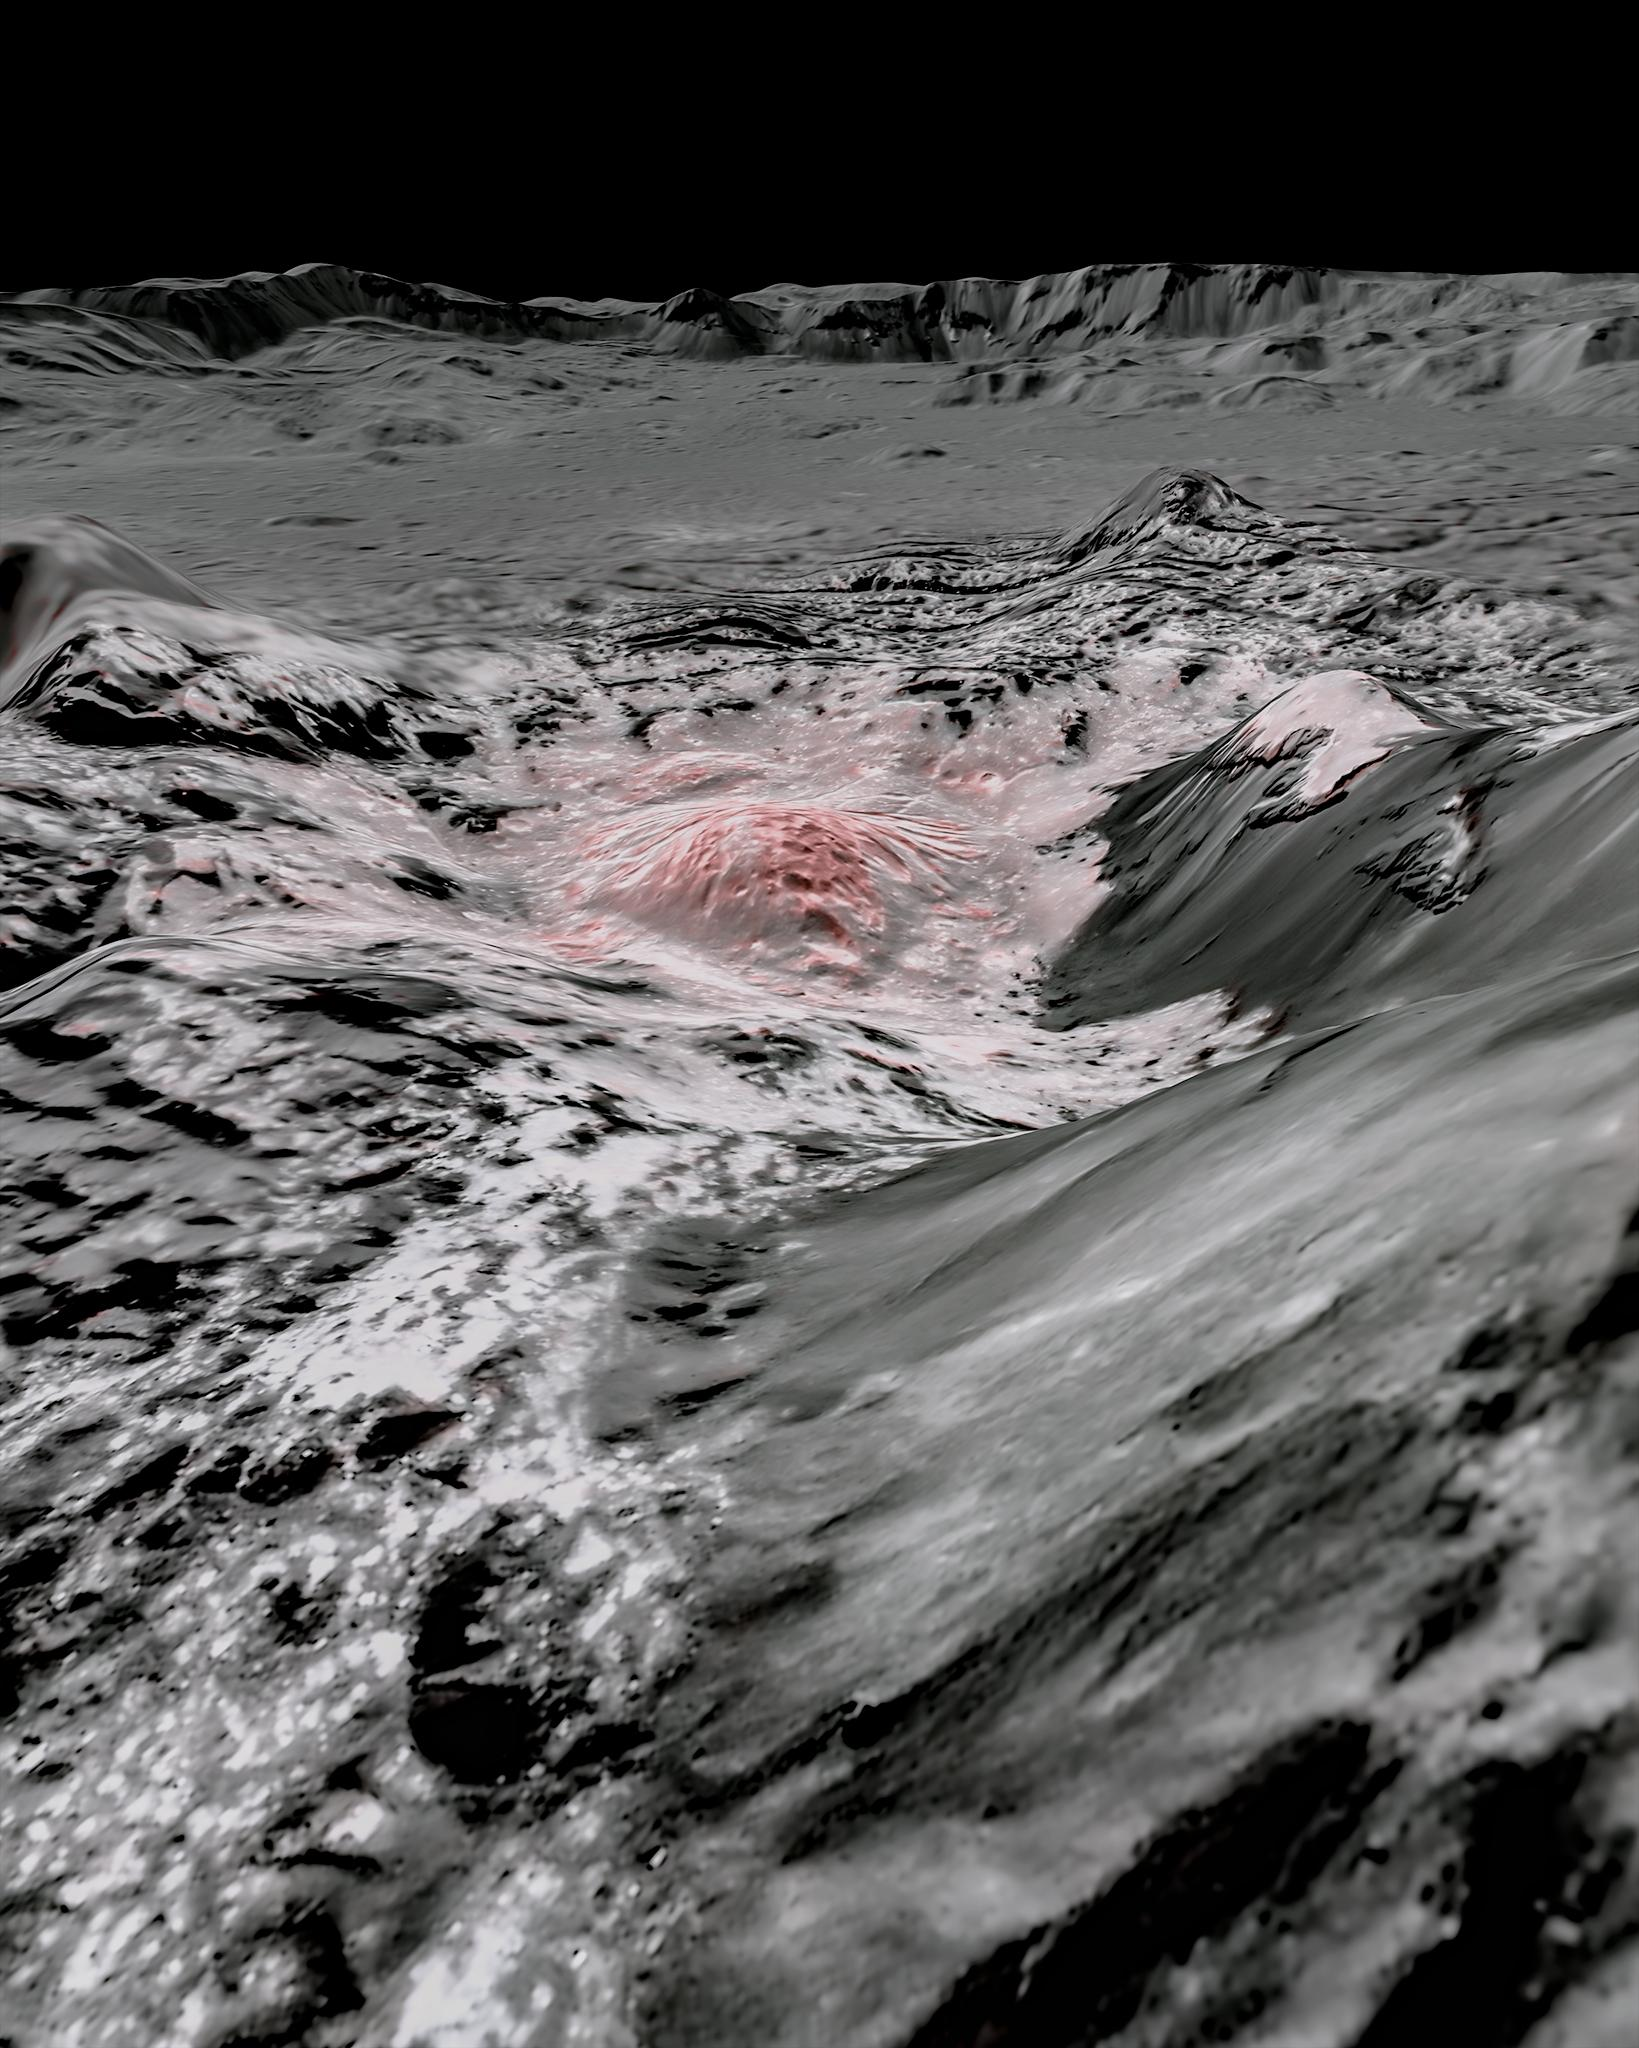 NASAs Dawn spacecraft captured pictures, which were combined to create this false-color view of a region in Occator Crater on the dwarf planet Ceres.